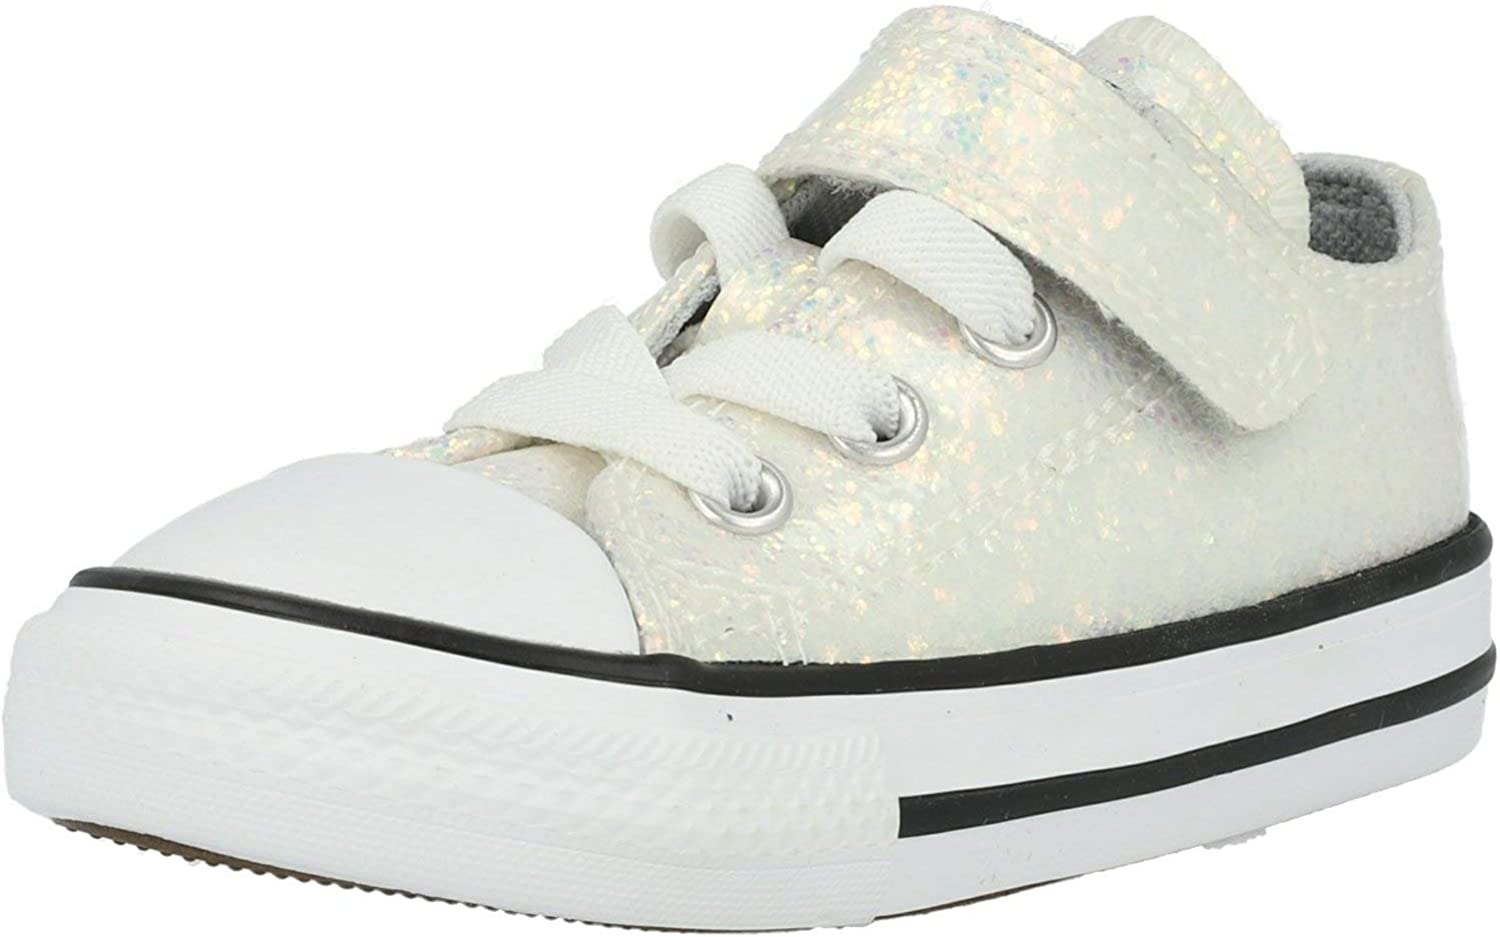 Converse Unisex-Child Chuck Taylor All Star Velcro Low Top Sneaker